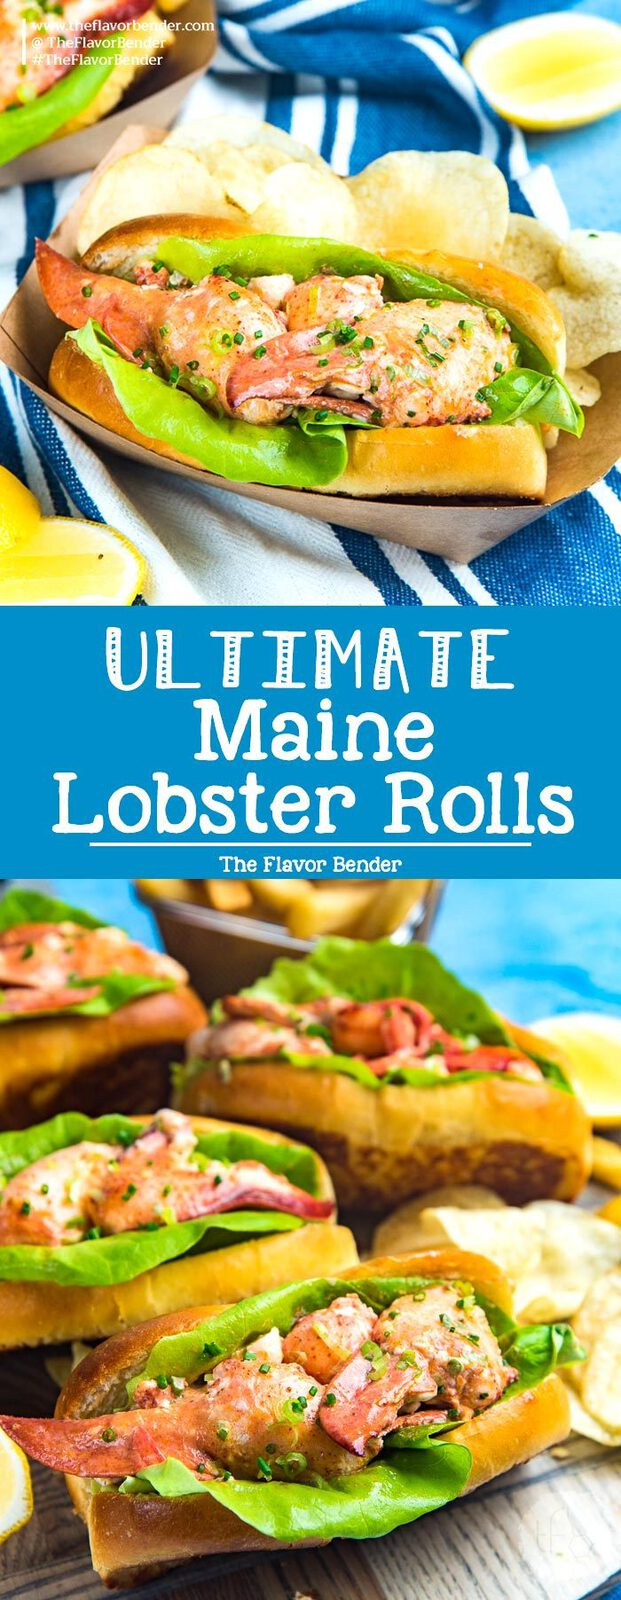 All you need to know about making and serving the ULTIMATE Maine Lobster Rolls in one post. A flavorful Lobster salad roll made with buttery lobster and homemade lobster roll buns. #LobsterRolls #MaineLobsterRoll #LobsterRecipes